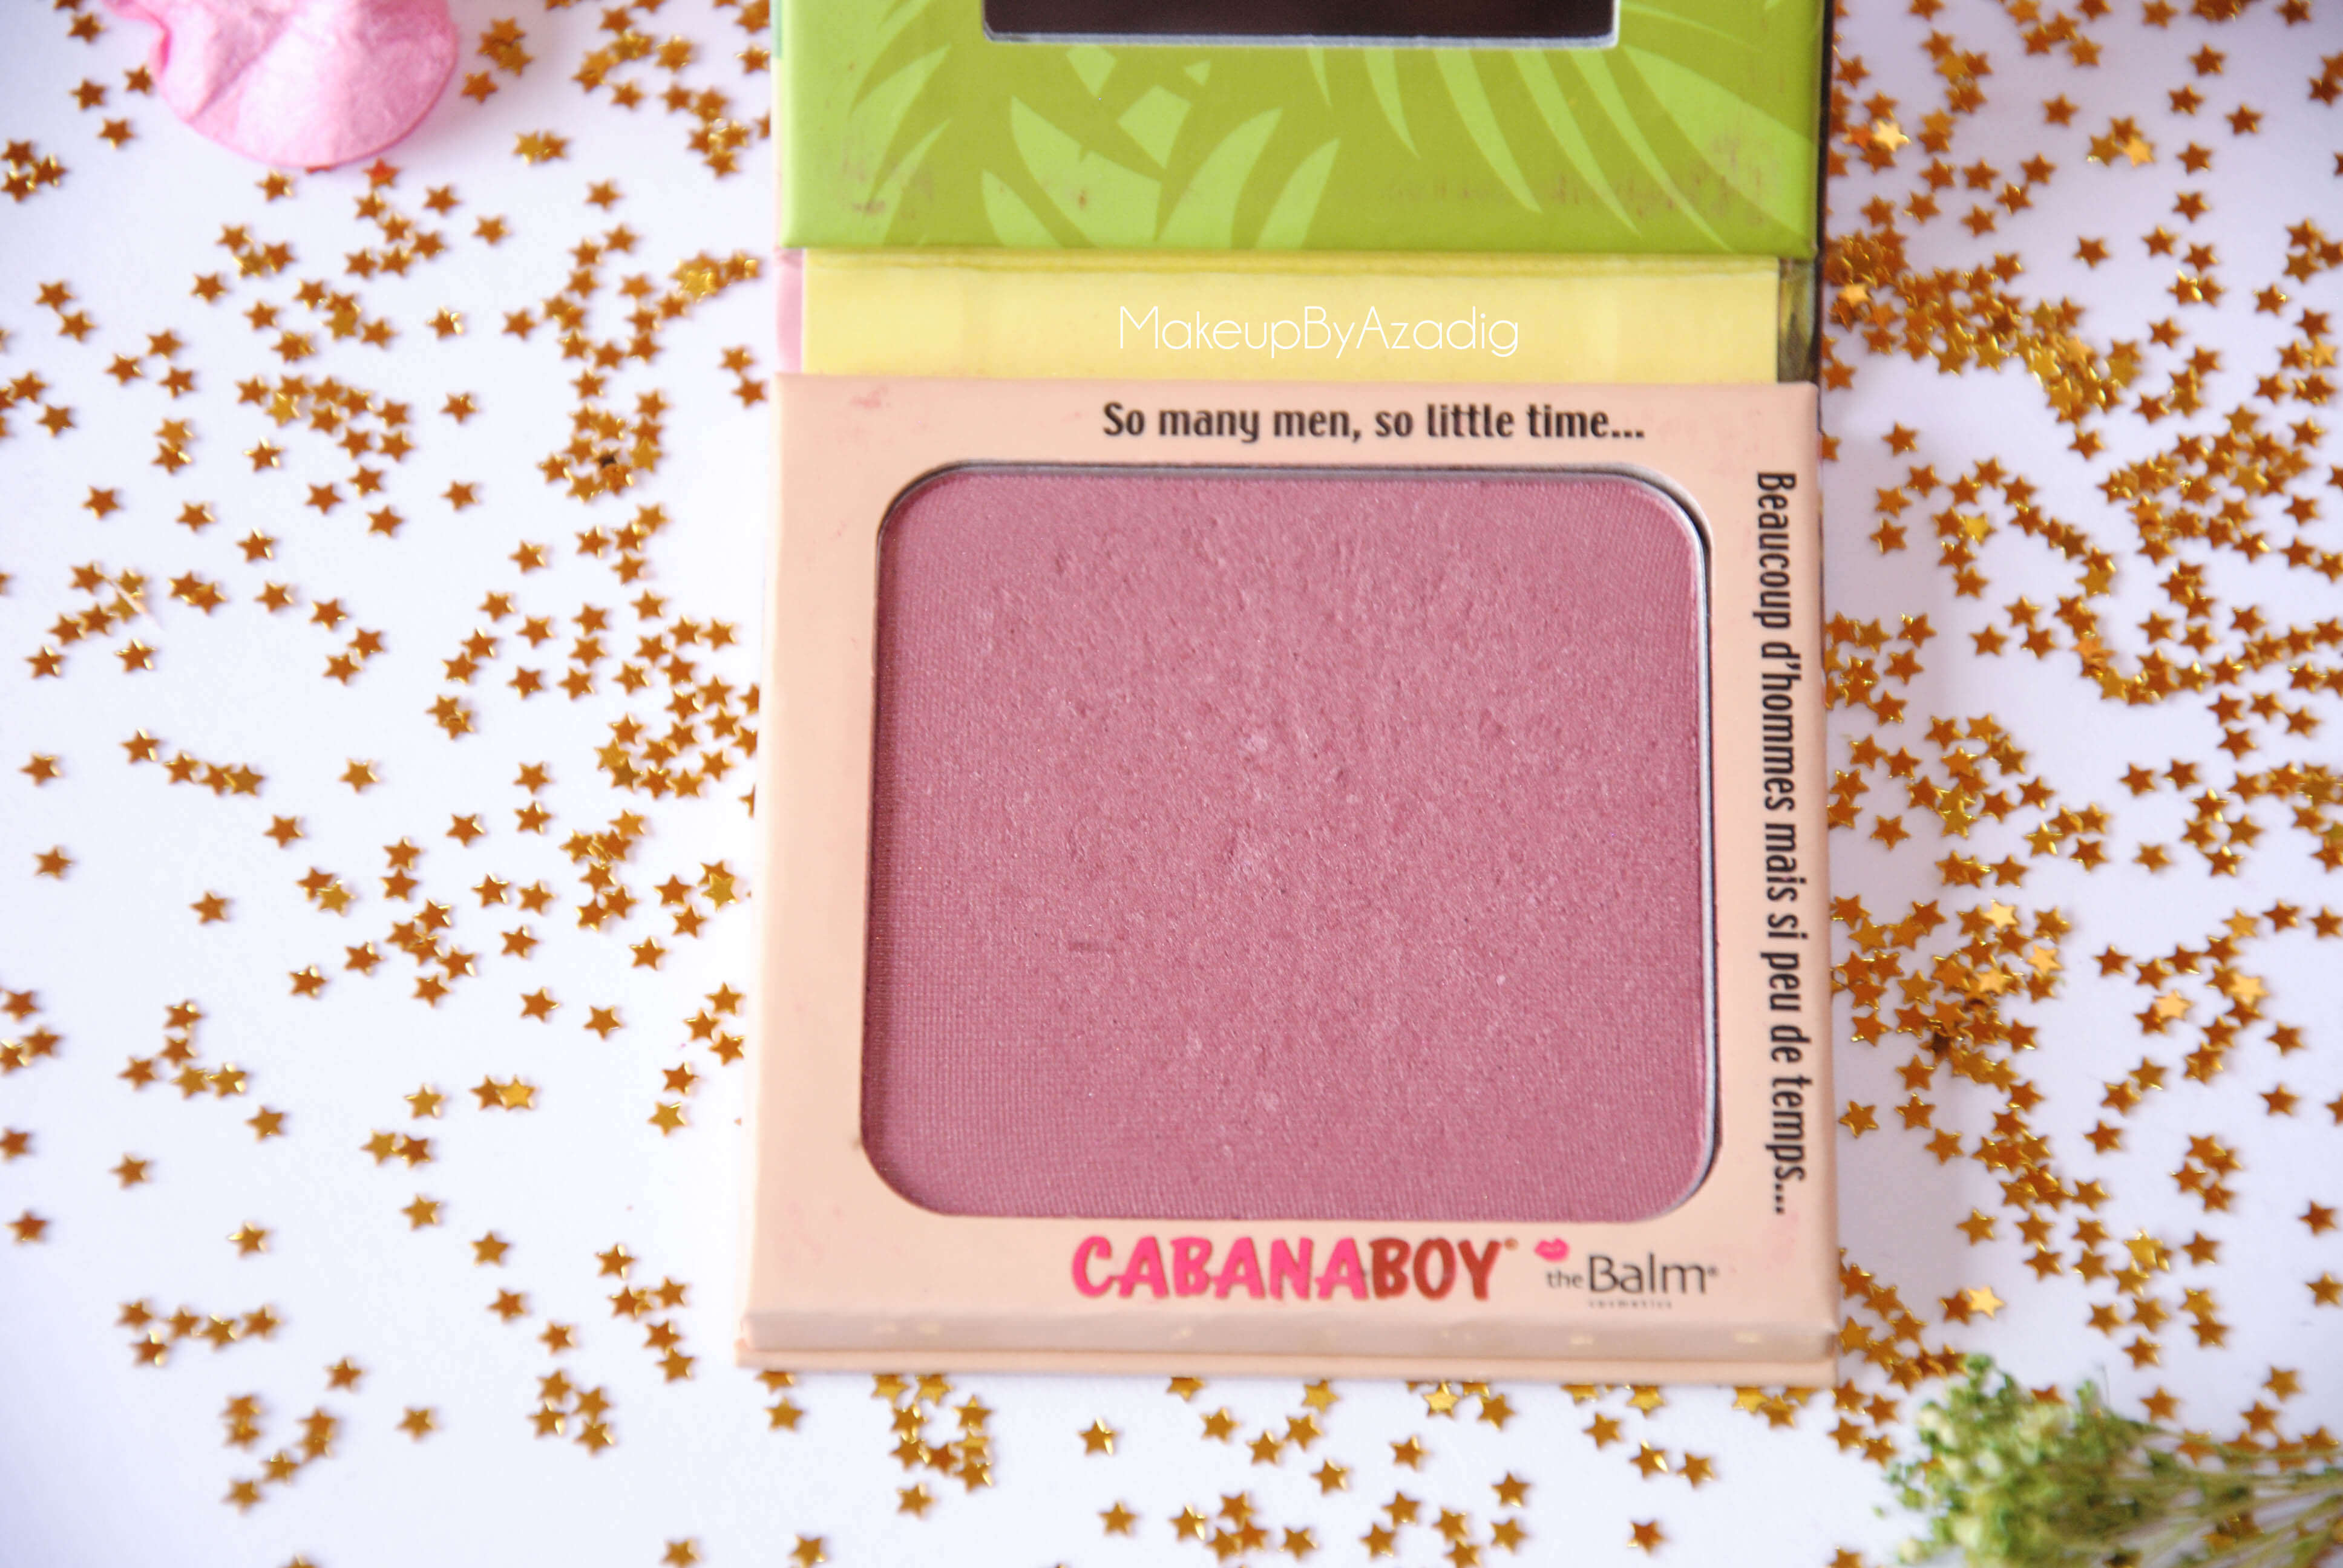 cabanaboy-the balm-blush rose fonce-monoprix-beaute privee-the beautyst-makeupbyazadig-pink